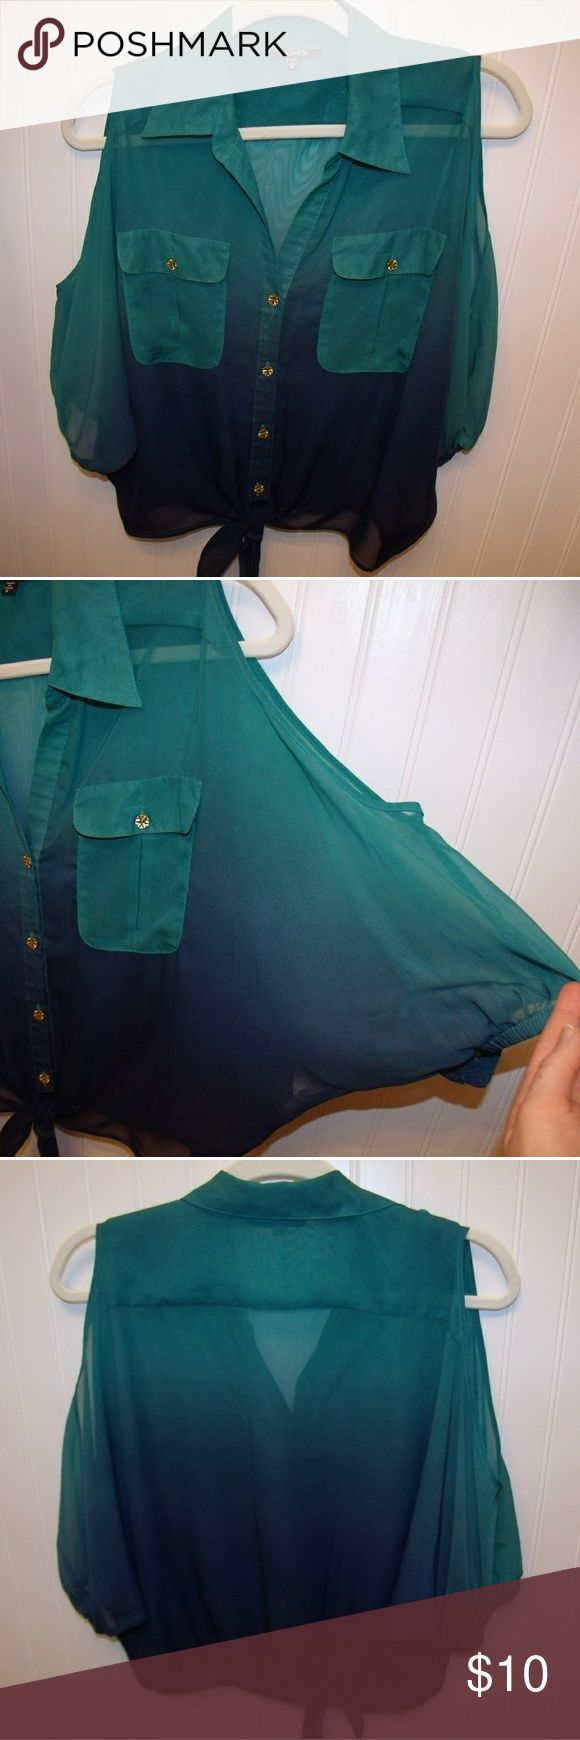 Emerald Ombre Sheer Top Light and flowy but the kind that fits just right! Has cutout shoulders and gold buttons to add a bit of attitude. Not your mother's button up shirt! Works great with jean bottoms!   *From a smoke free home* XOXO Tops Blouses